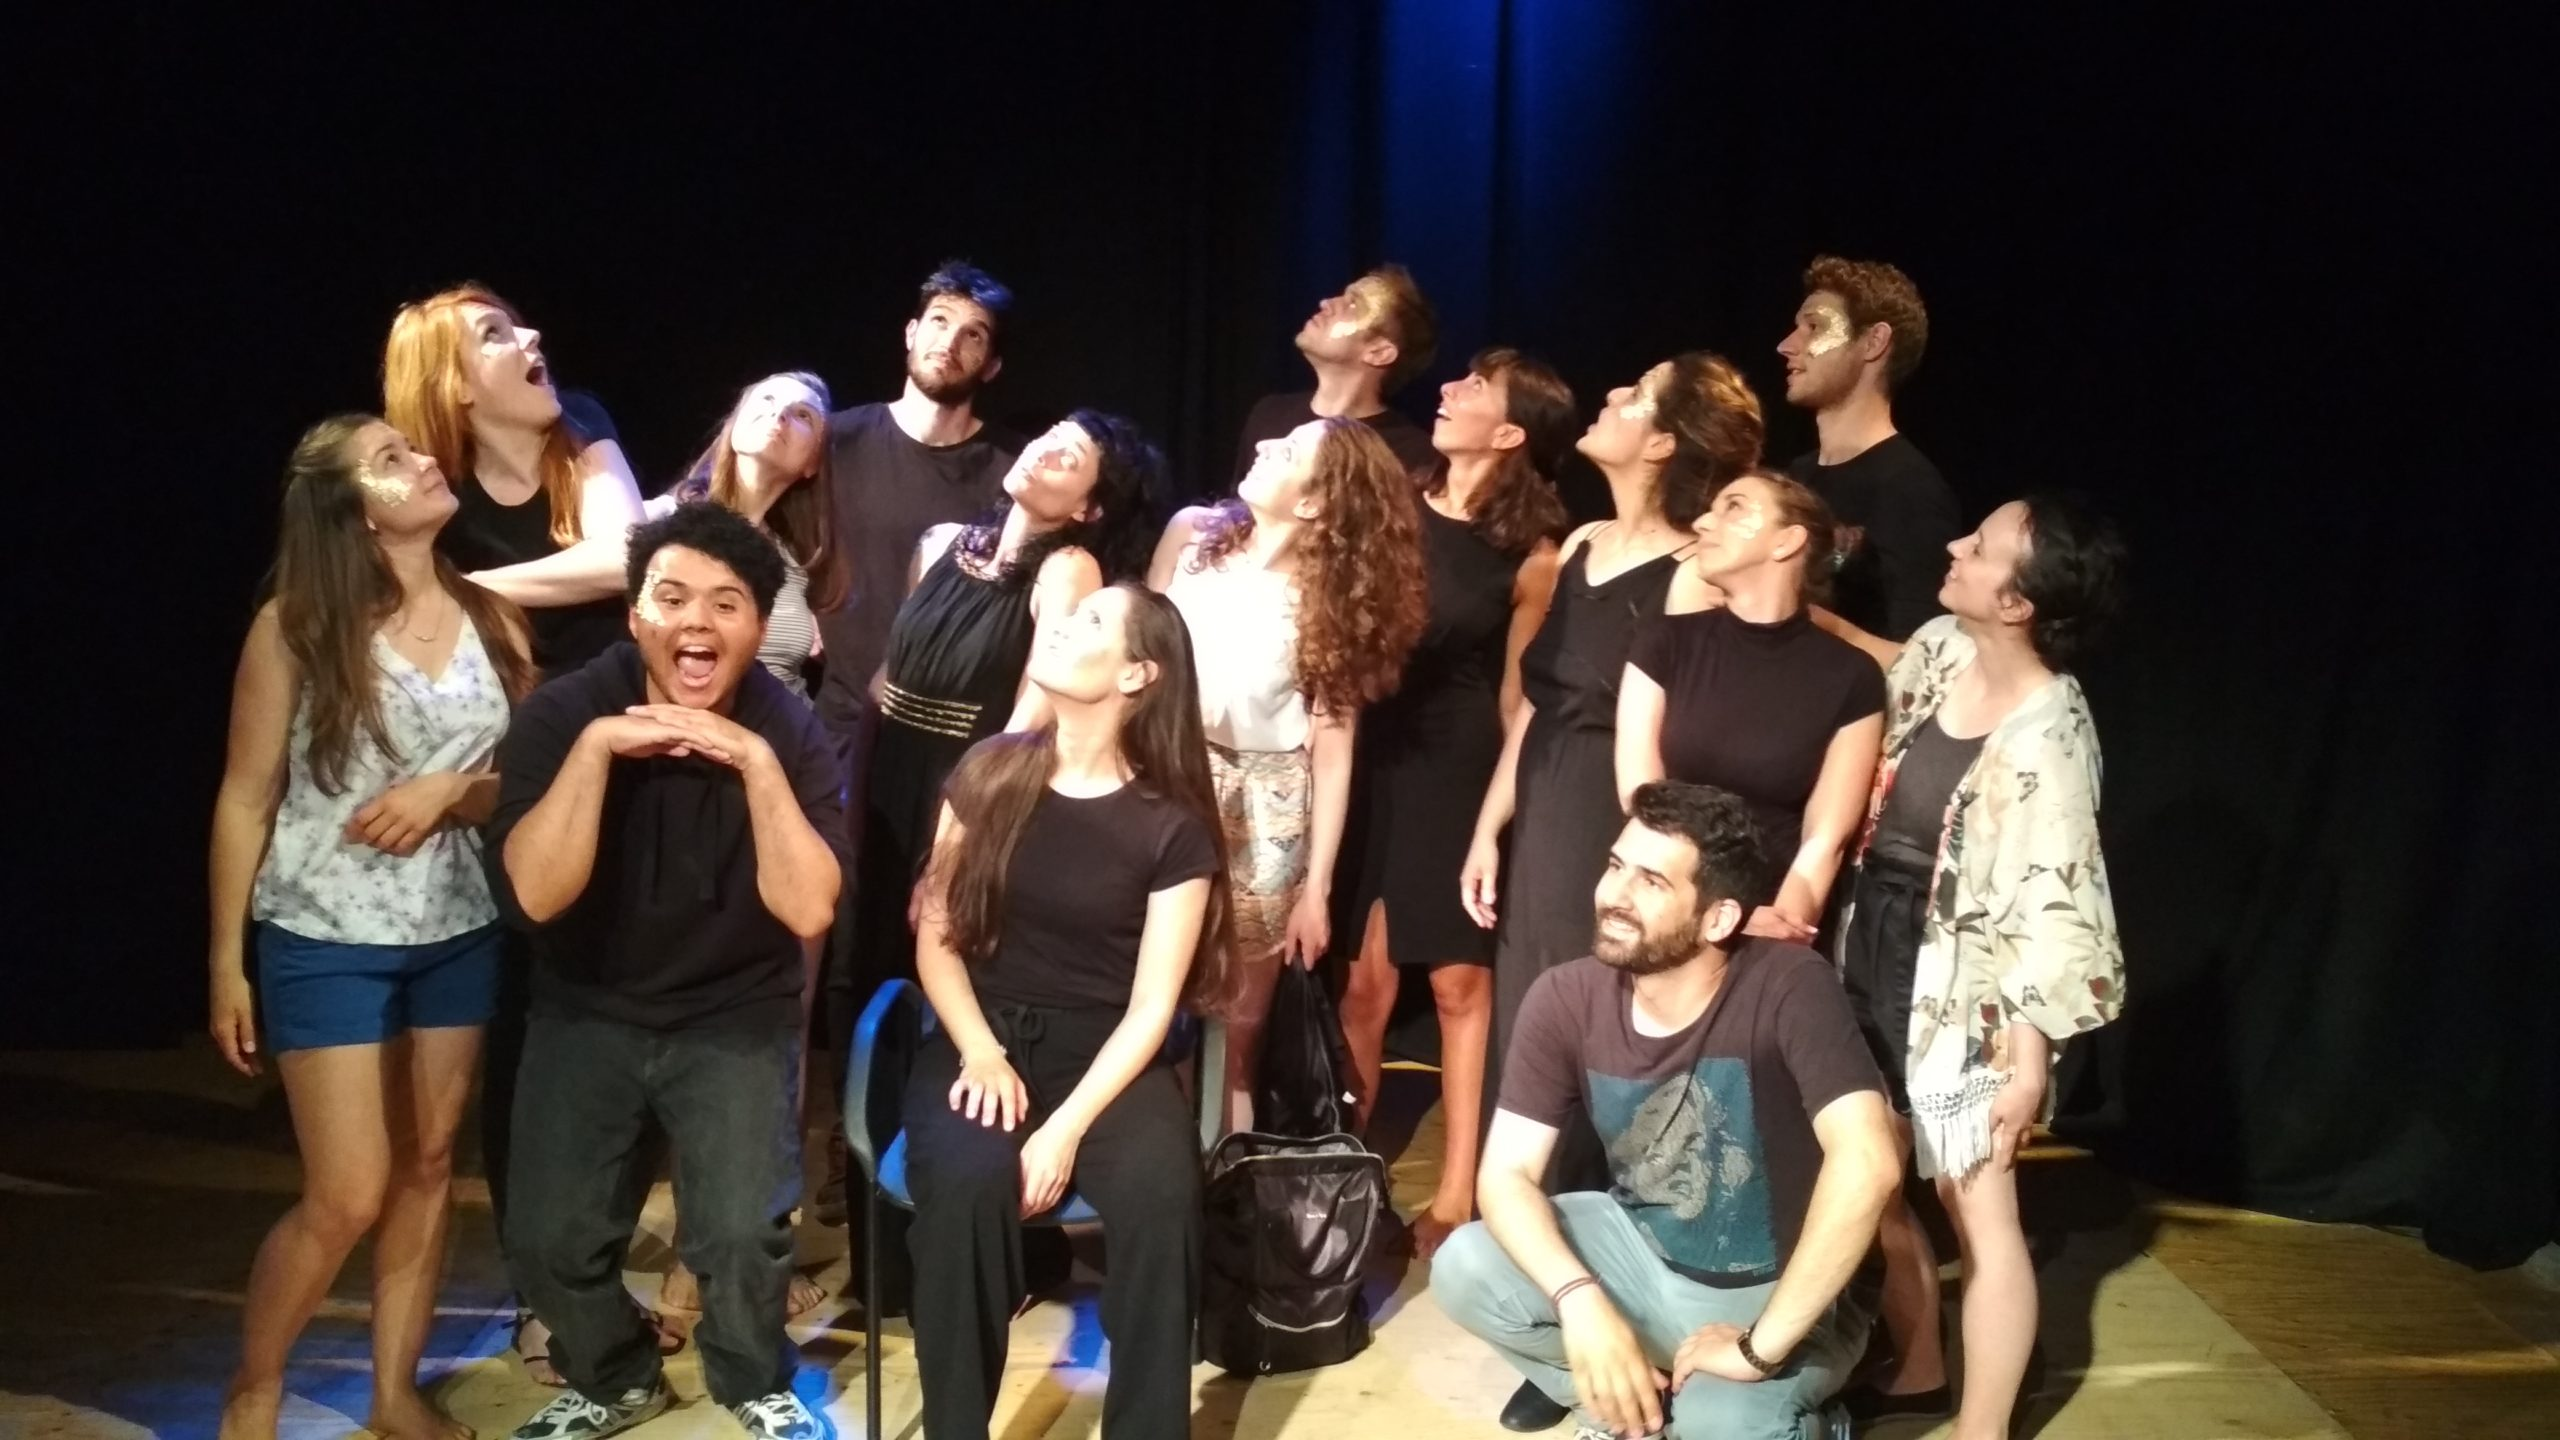 """Keeping up with the Greeks"" show. Group photo of the cast and team, fifteen people. People are posing and looking up"